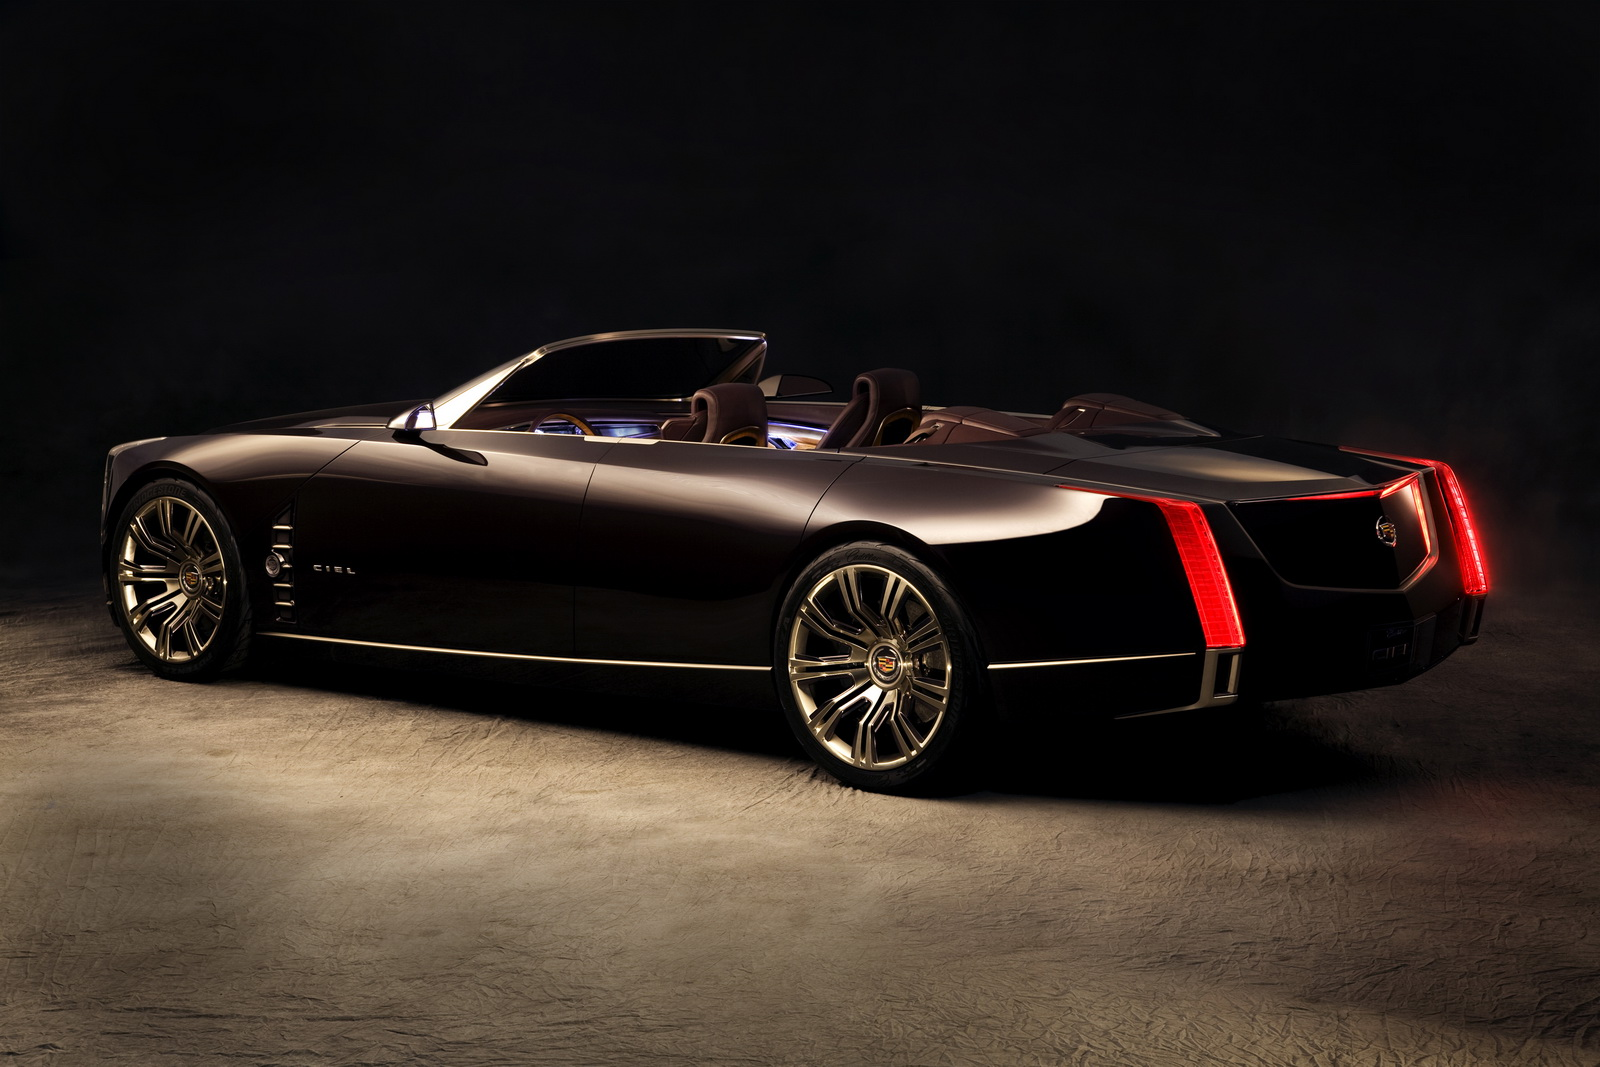 2011 cadillac ciel 4 door convertible concept. Black Bedroom Furniture Sets. Home Design Ideas